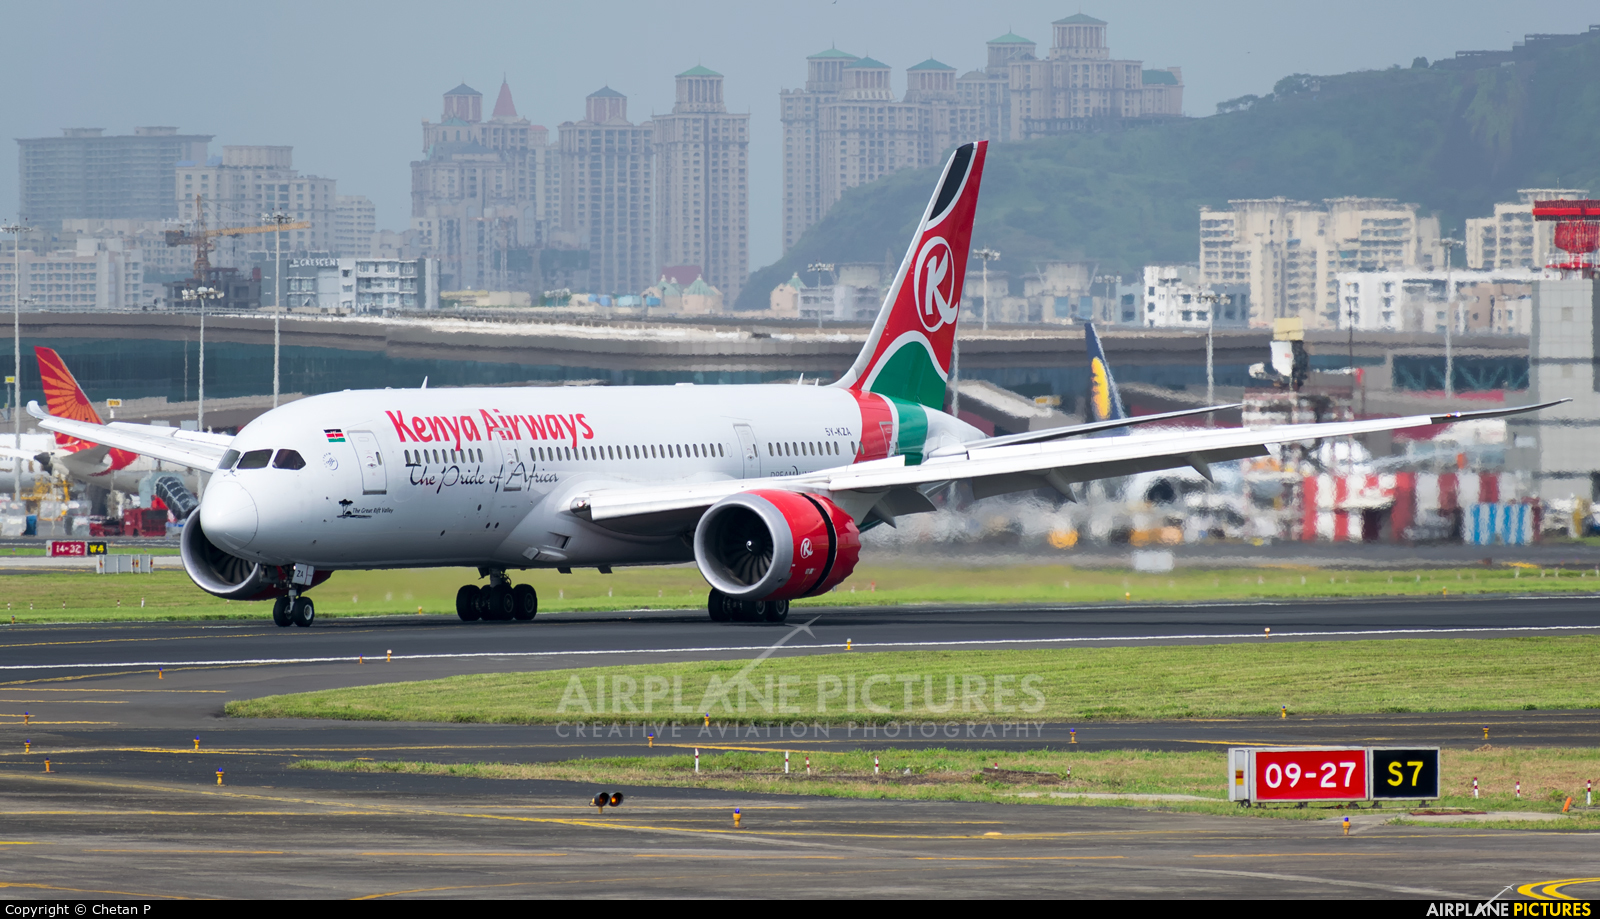 Kenya Airways 5Y-KZA aircraft at Mumbai - Chhatrapati Shivaji Intl